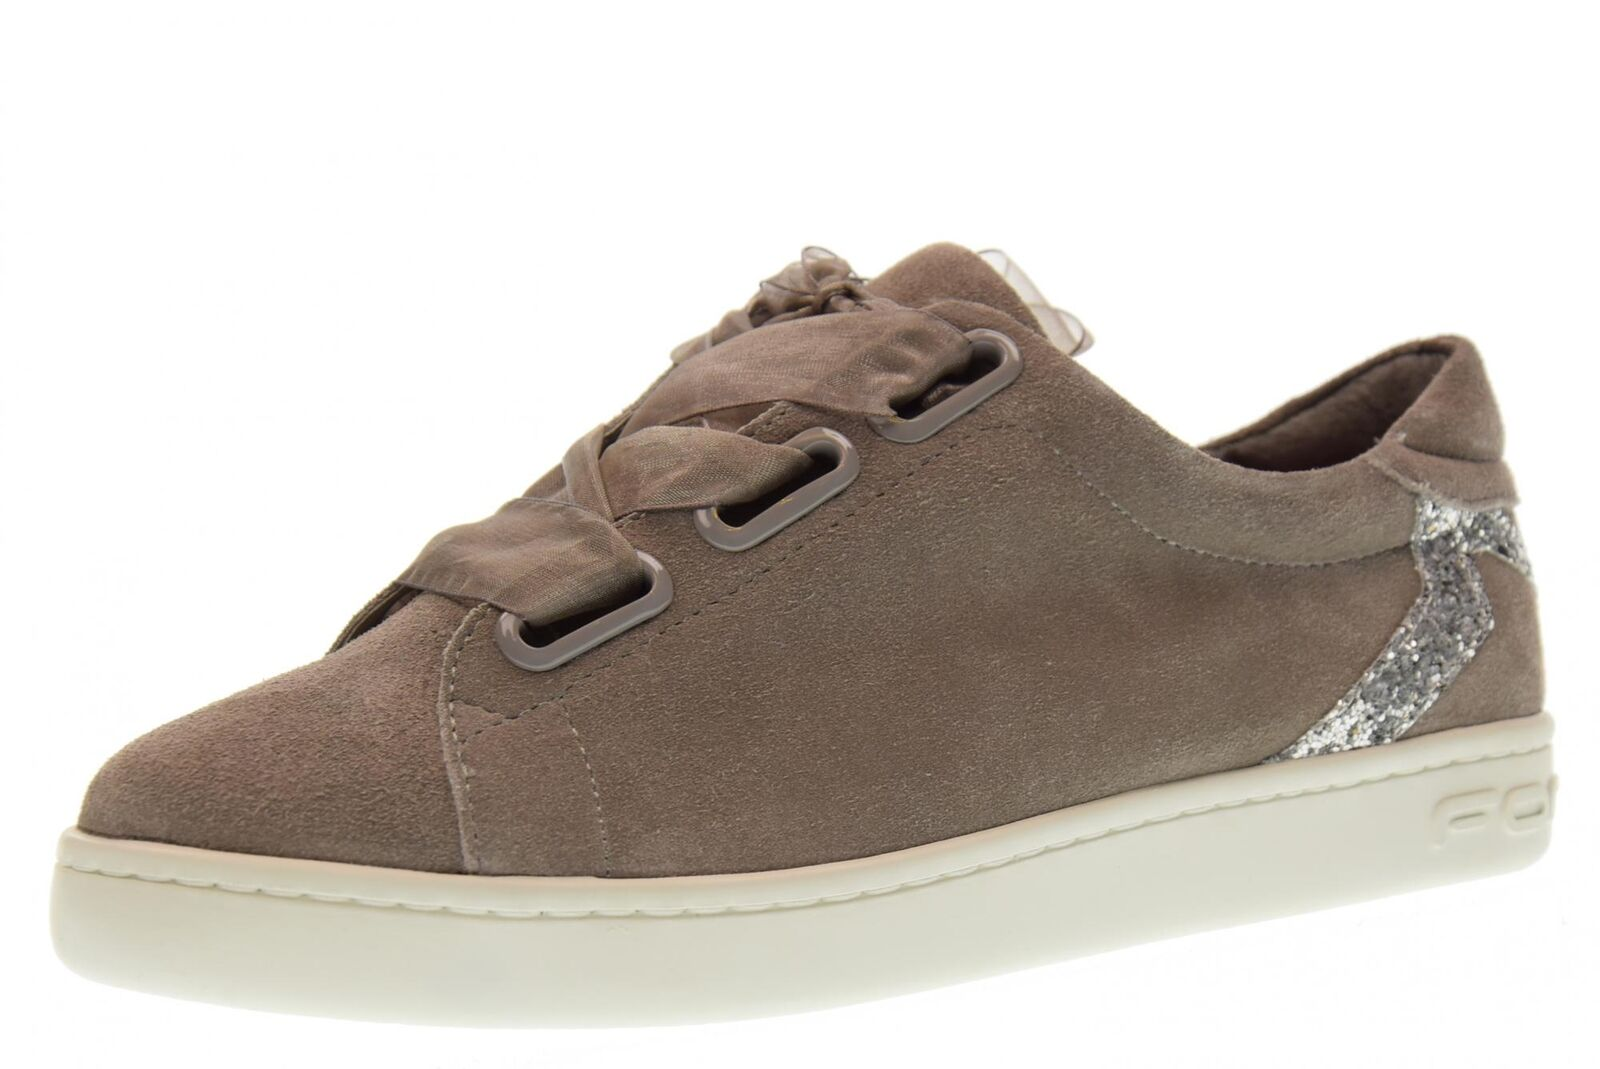 Kenneth REACTION Cole REACTION Kenneth Mujer Jodi MID-TOP Sneaker, Negro, talla 8.5 8RfP 8fcc3c